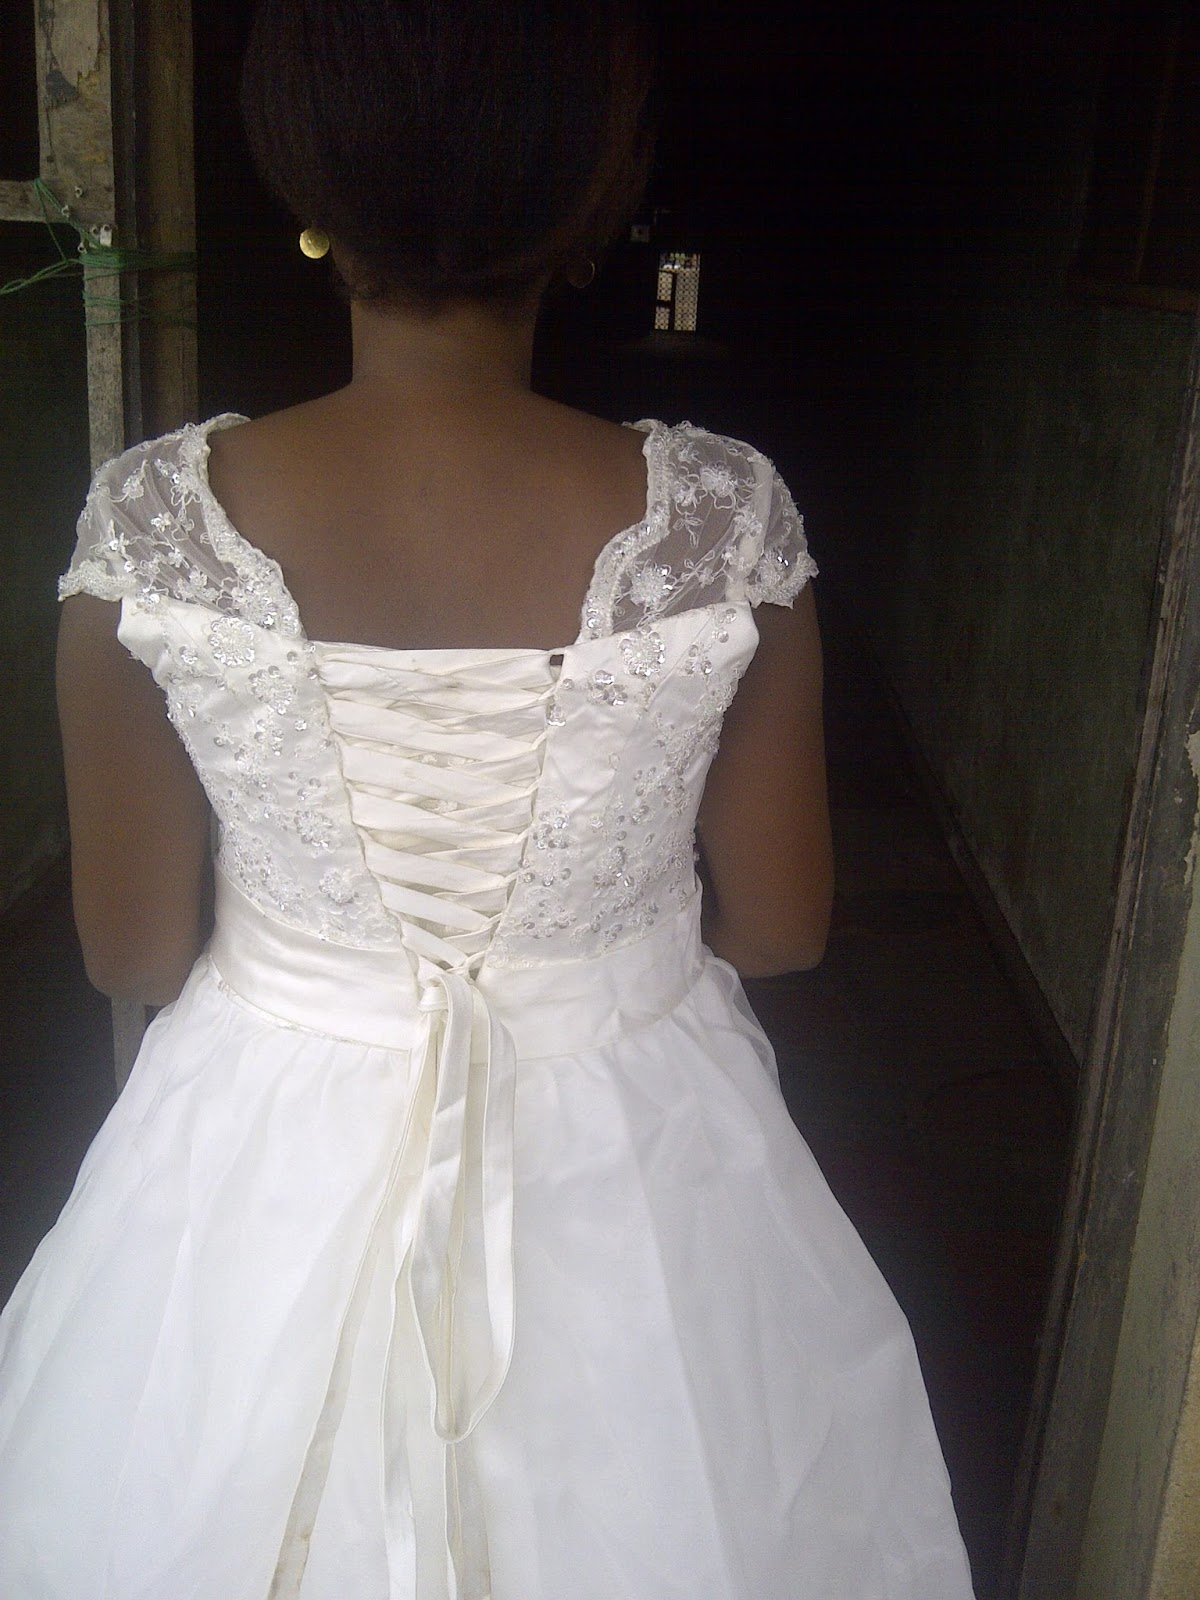 She Is Selling Her Wedding For 70k But Its Negotiable Size 10 To 12 And Lagos Based Only Interested Person Should Contact On 07069716796